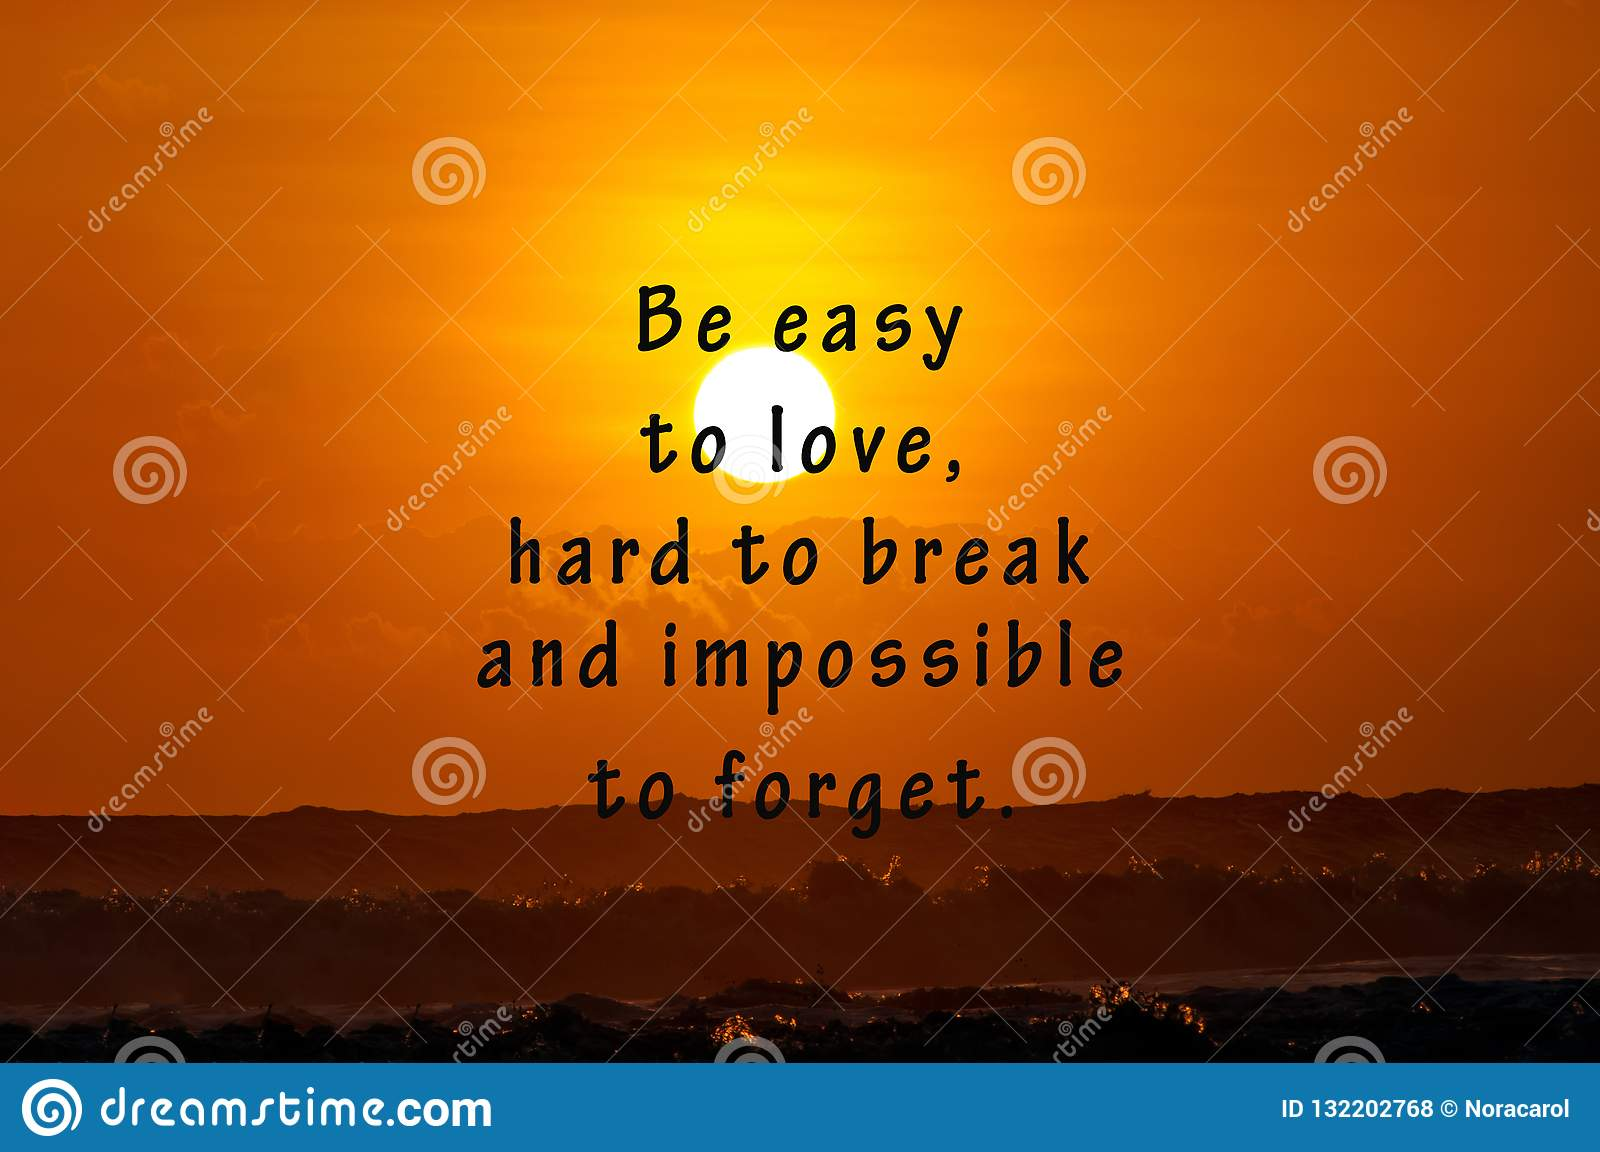 Inspirational Life Quotes stock photo. Image of poster ...